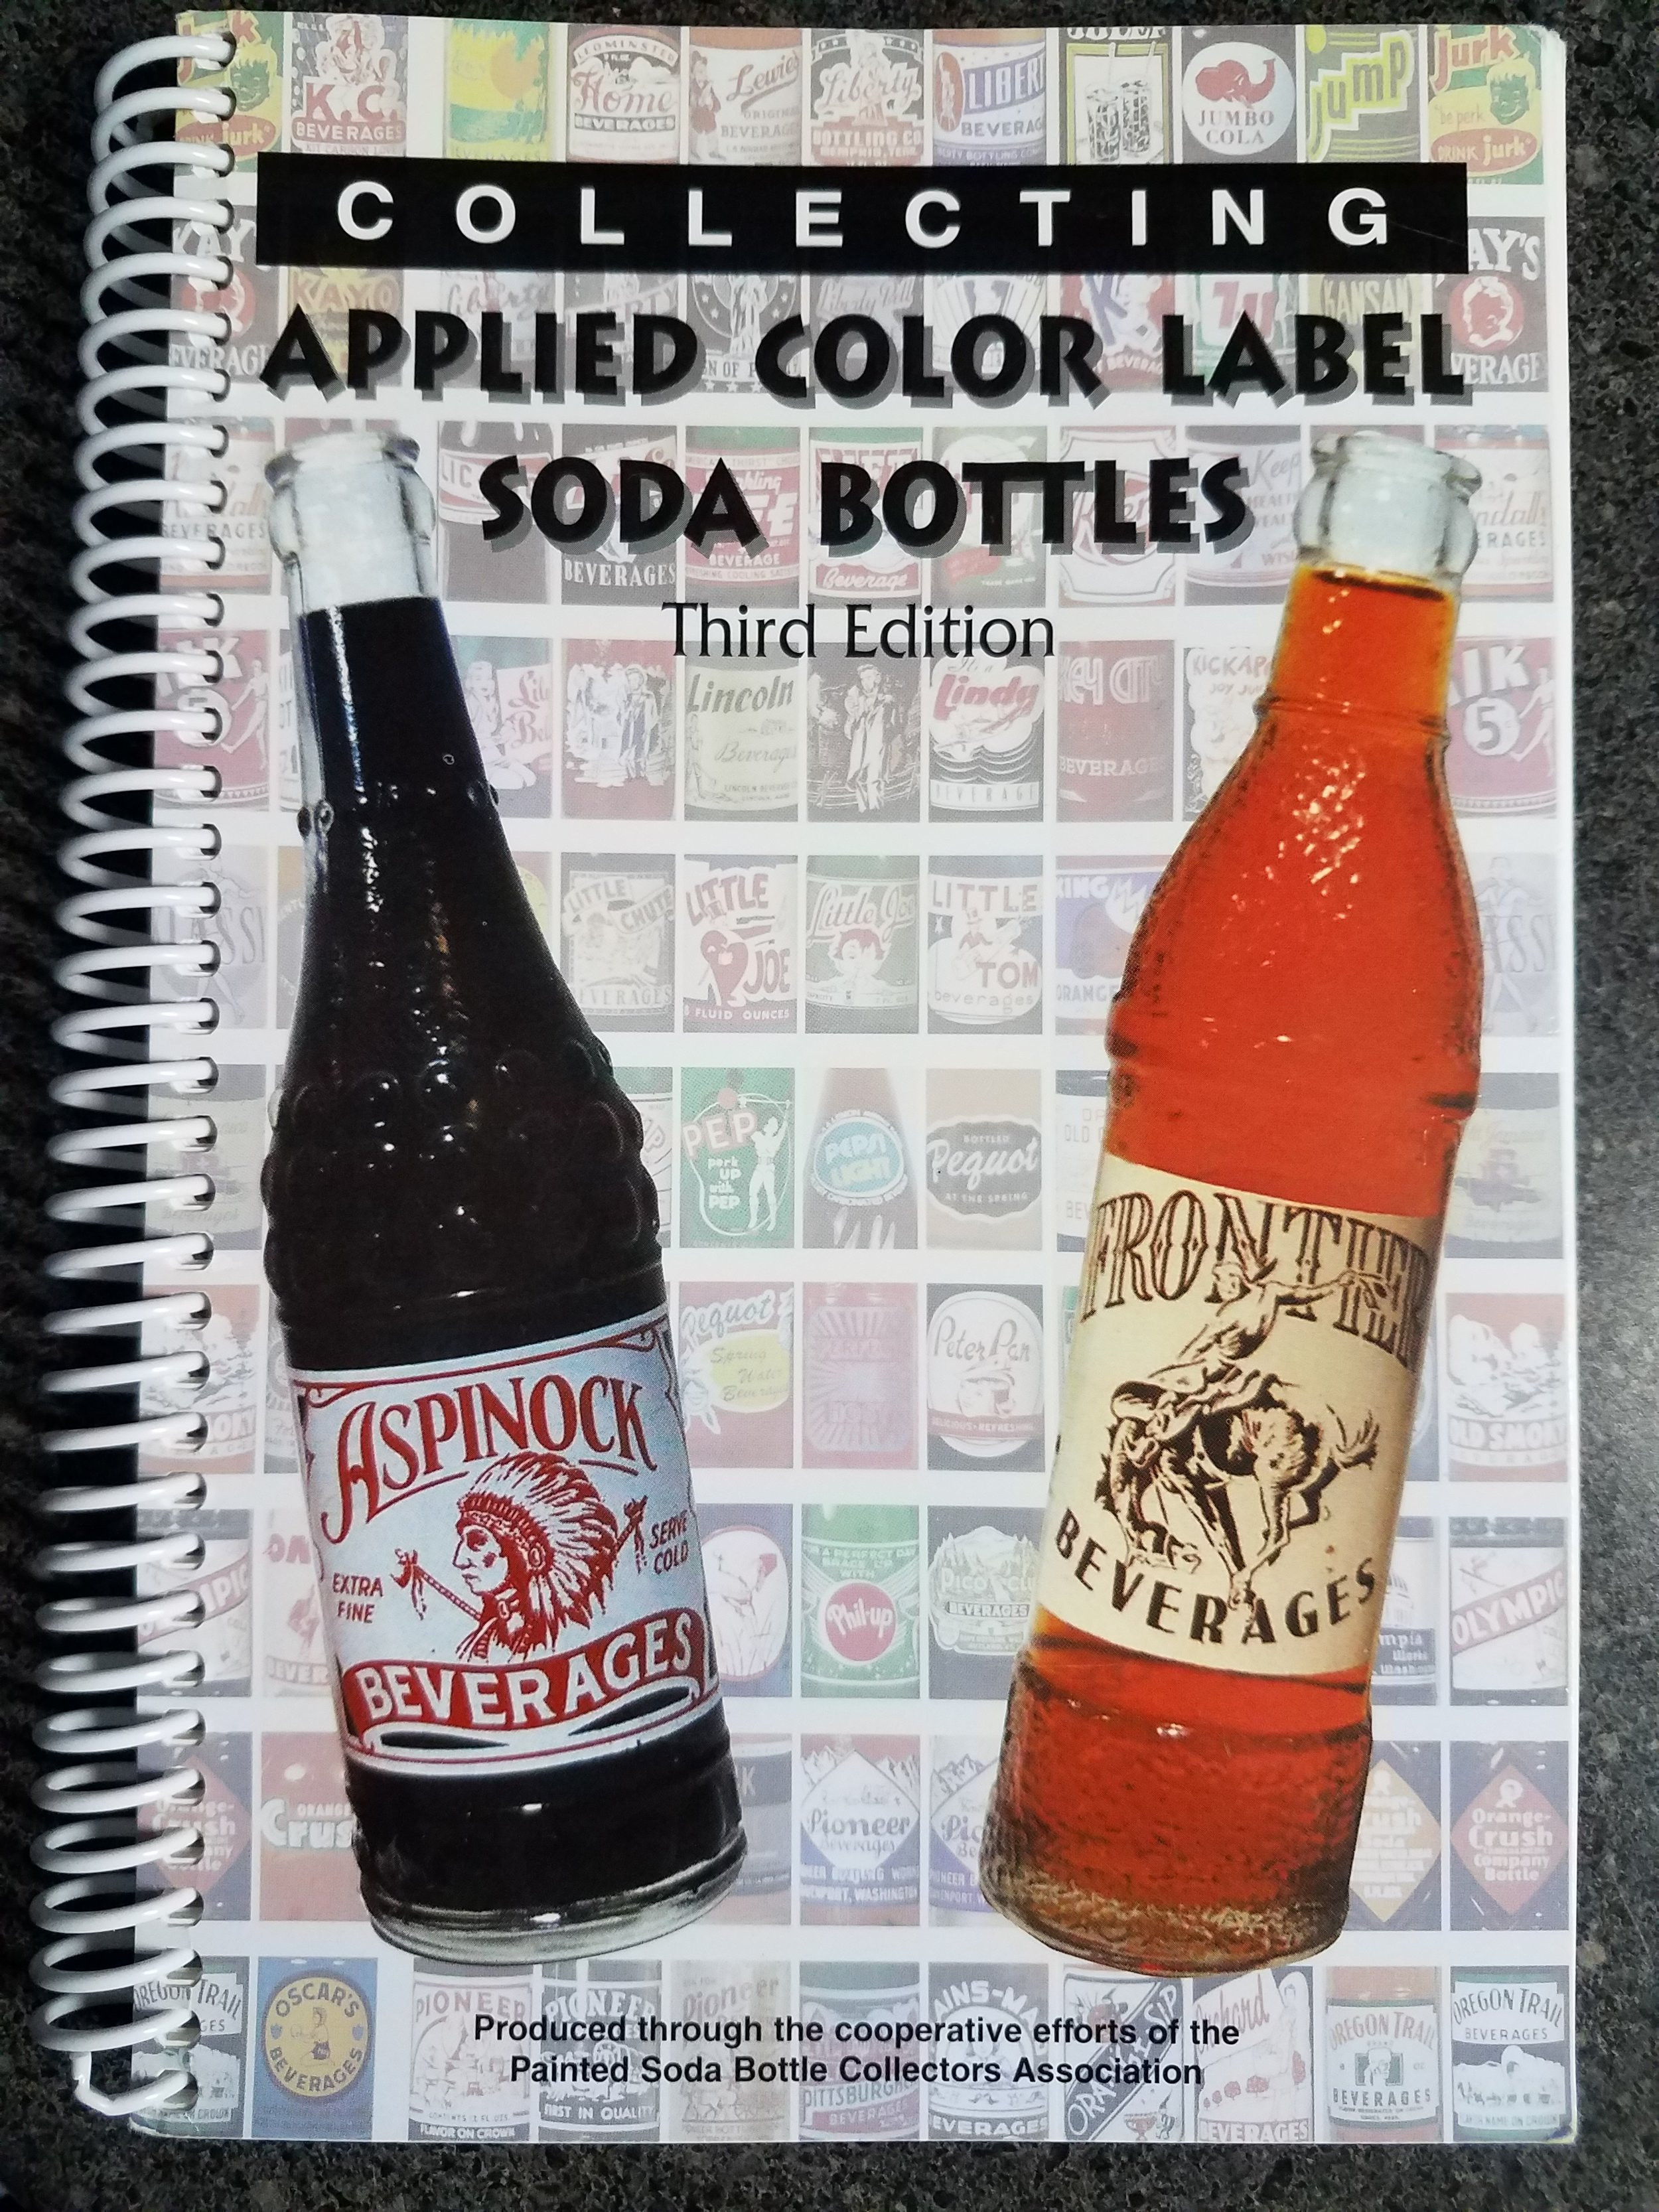 Collecting Applied Color Label Soda Bottles -Third Edition  - Published by Rick Sweeney on behalf of the Painted Soda Bottle Collectors Association (2002)Consider the bible of ACL soda collectors guides that contains listing of 1600+ bottles with 1,200 photos.. In addition the first half of the book provides great history of bottle manufacturing and many brand stories. A must have for any ACL collector